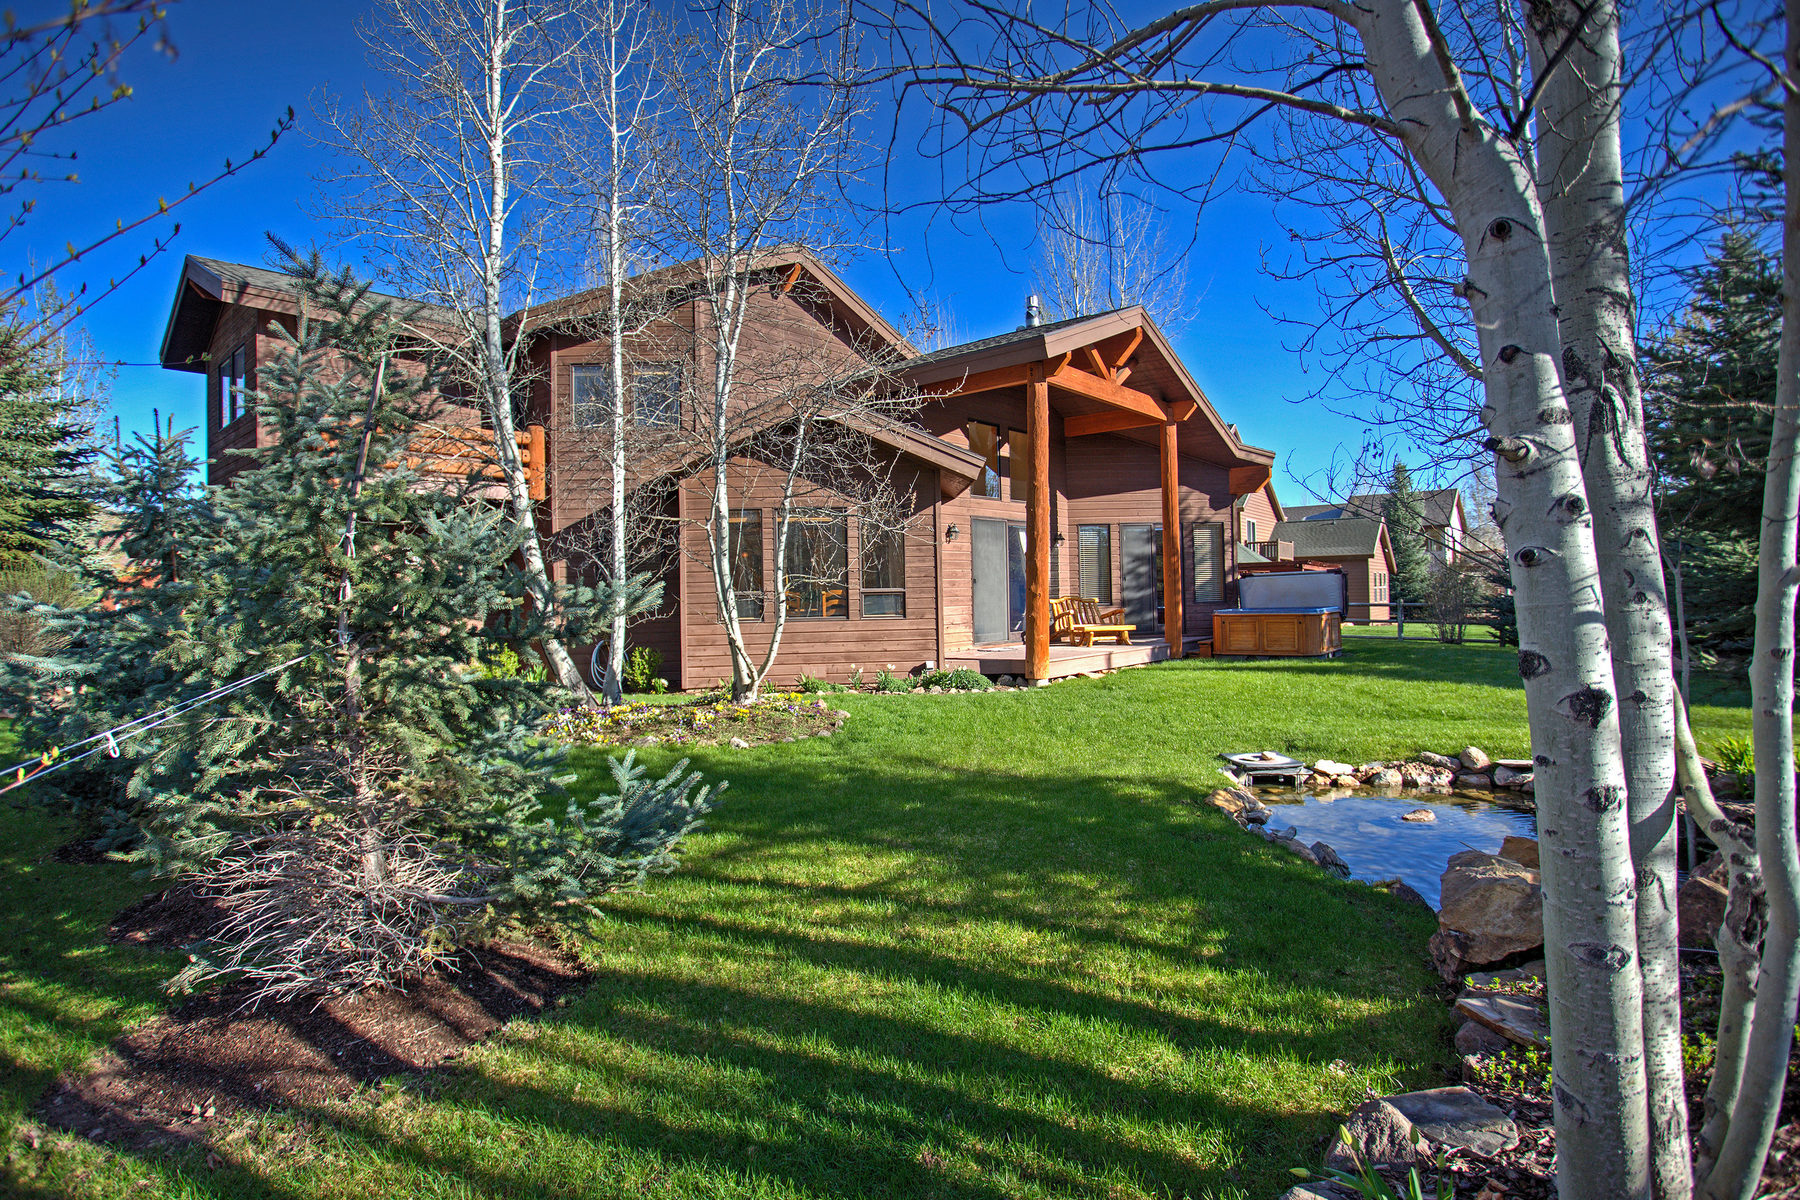 Single Family Home for Sale at Stunning Home with Fabulous Indoor and Outdoor Living Spaces 1091 Cutter Ln Park City, Utah, 84098 United States